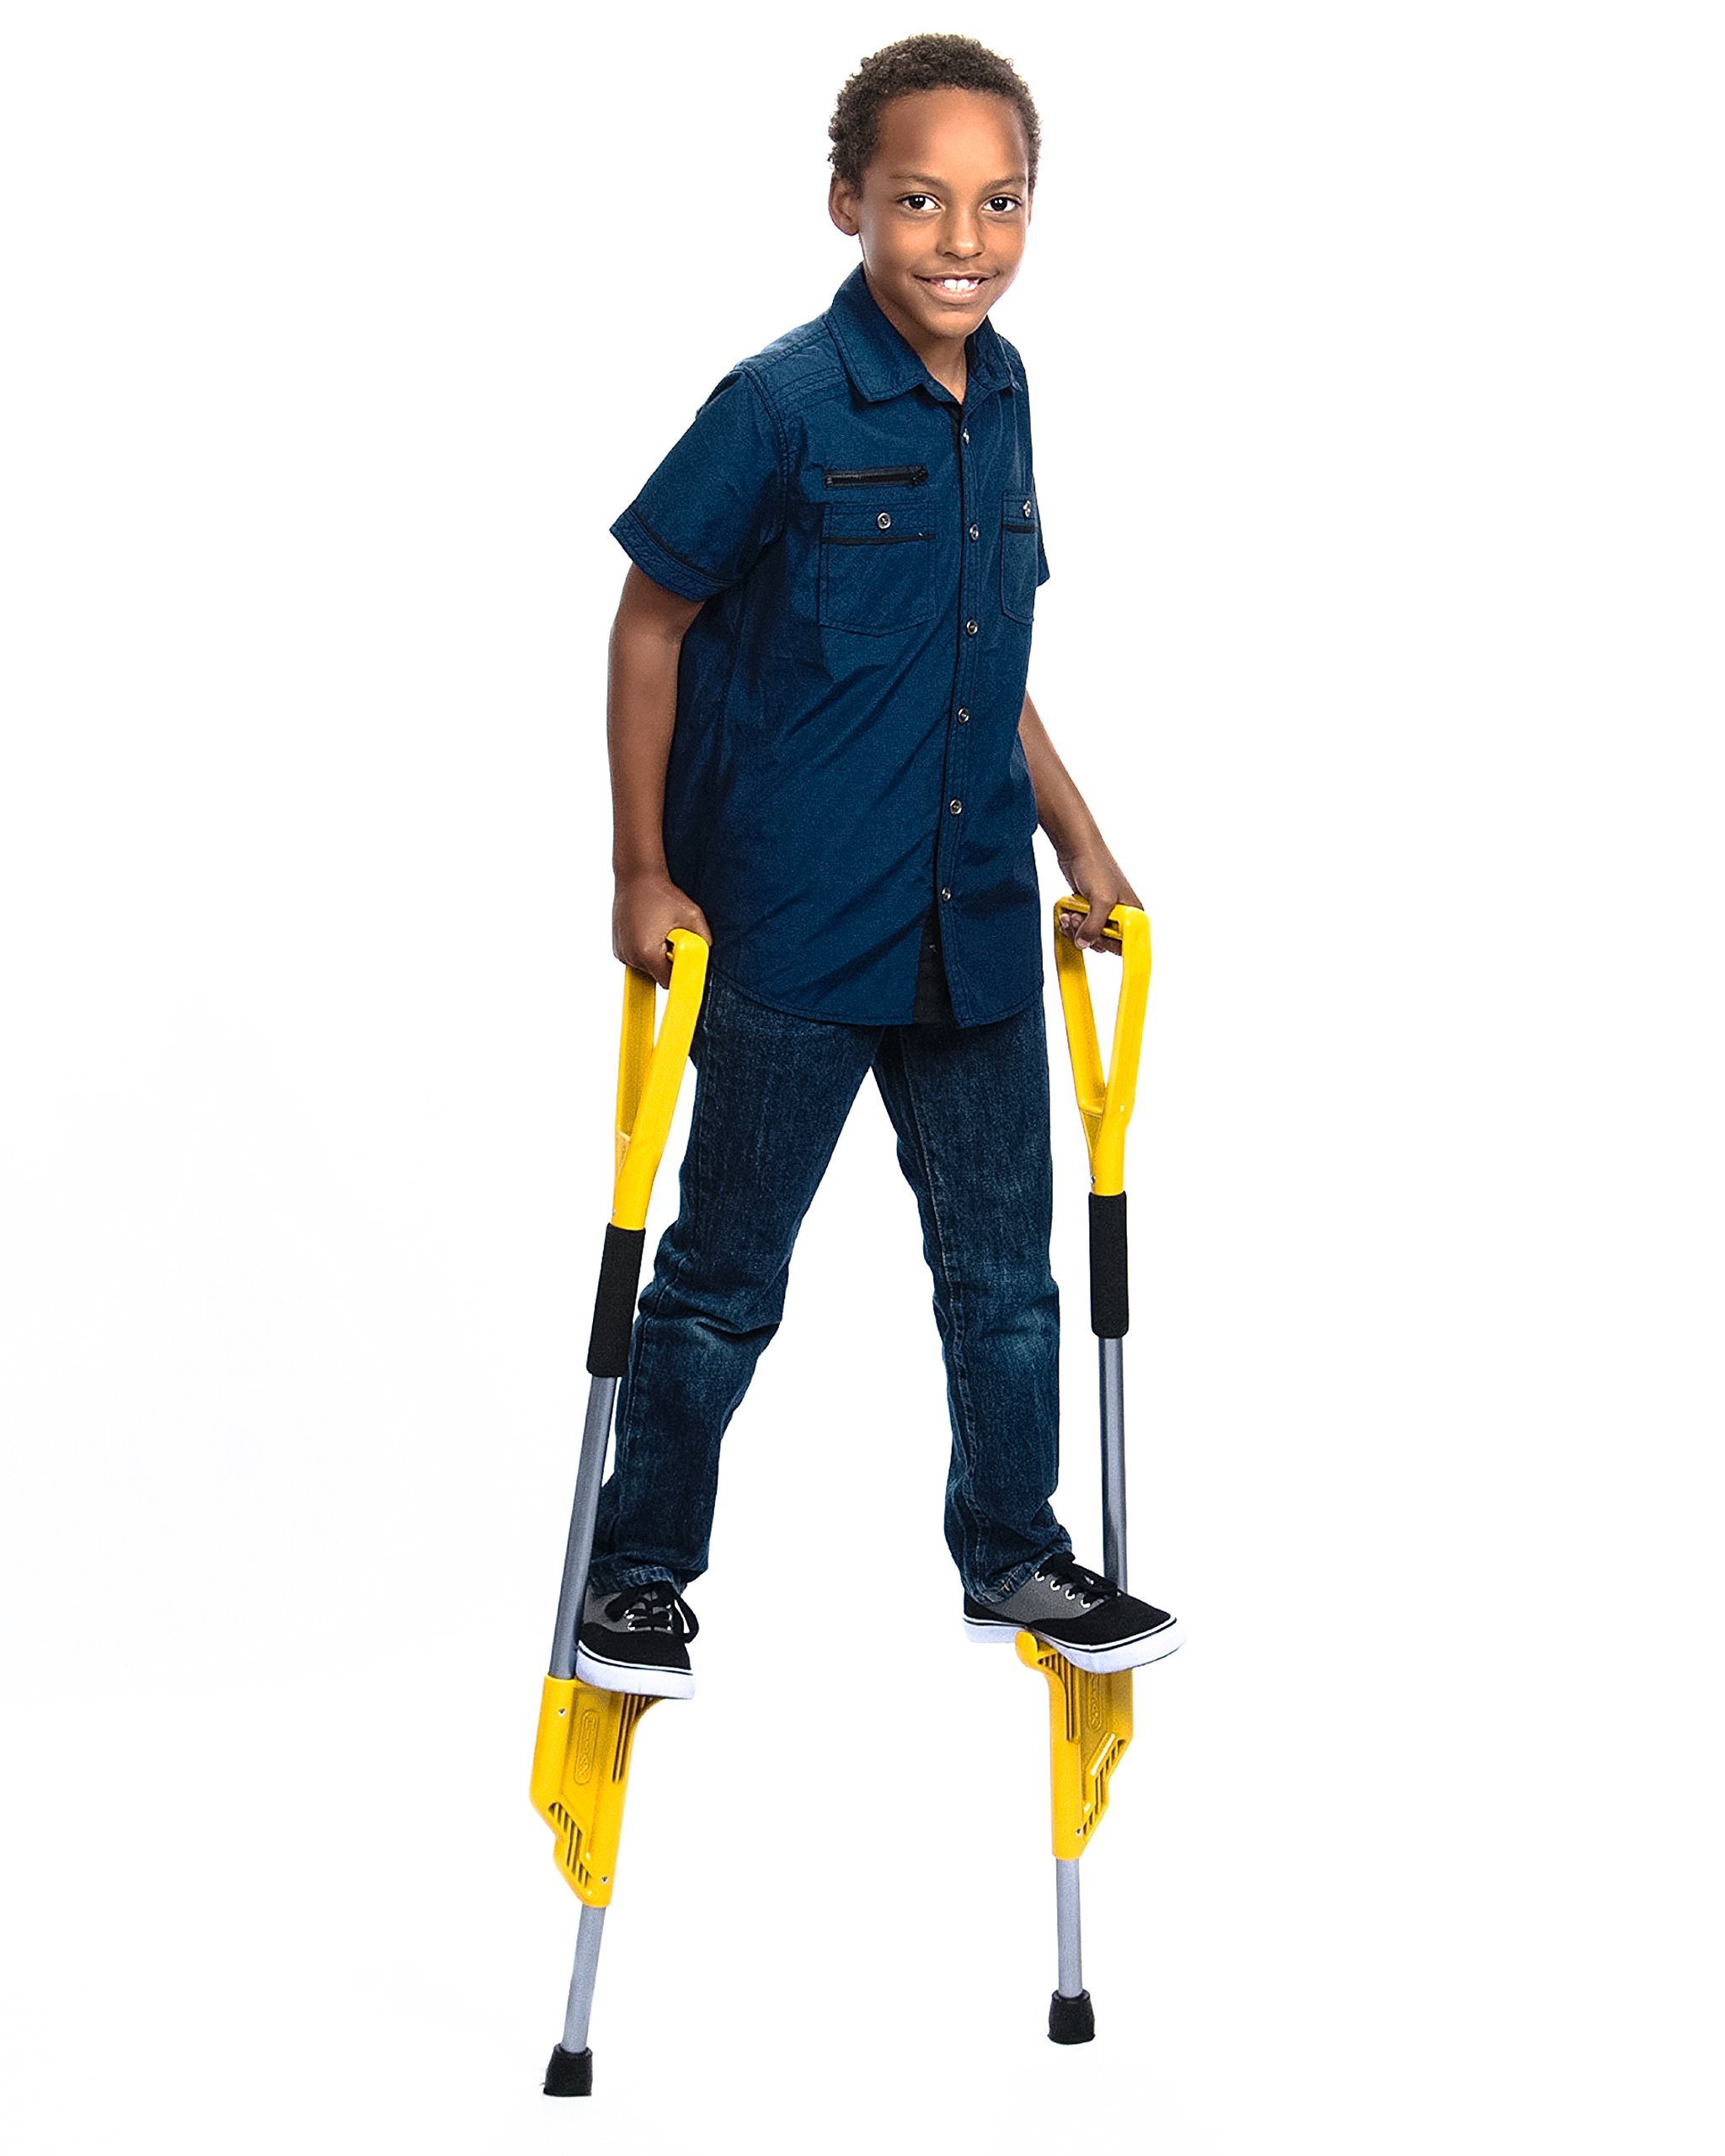 Hijax Standard Size American Stilts for Active Kids (Platinum) by Extex